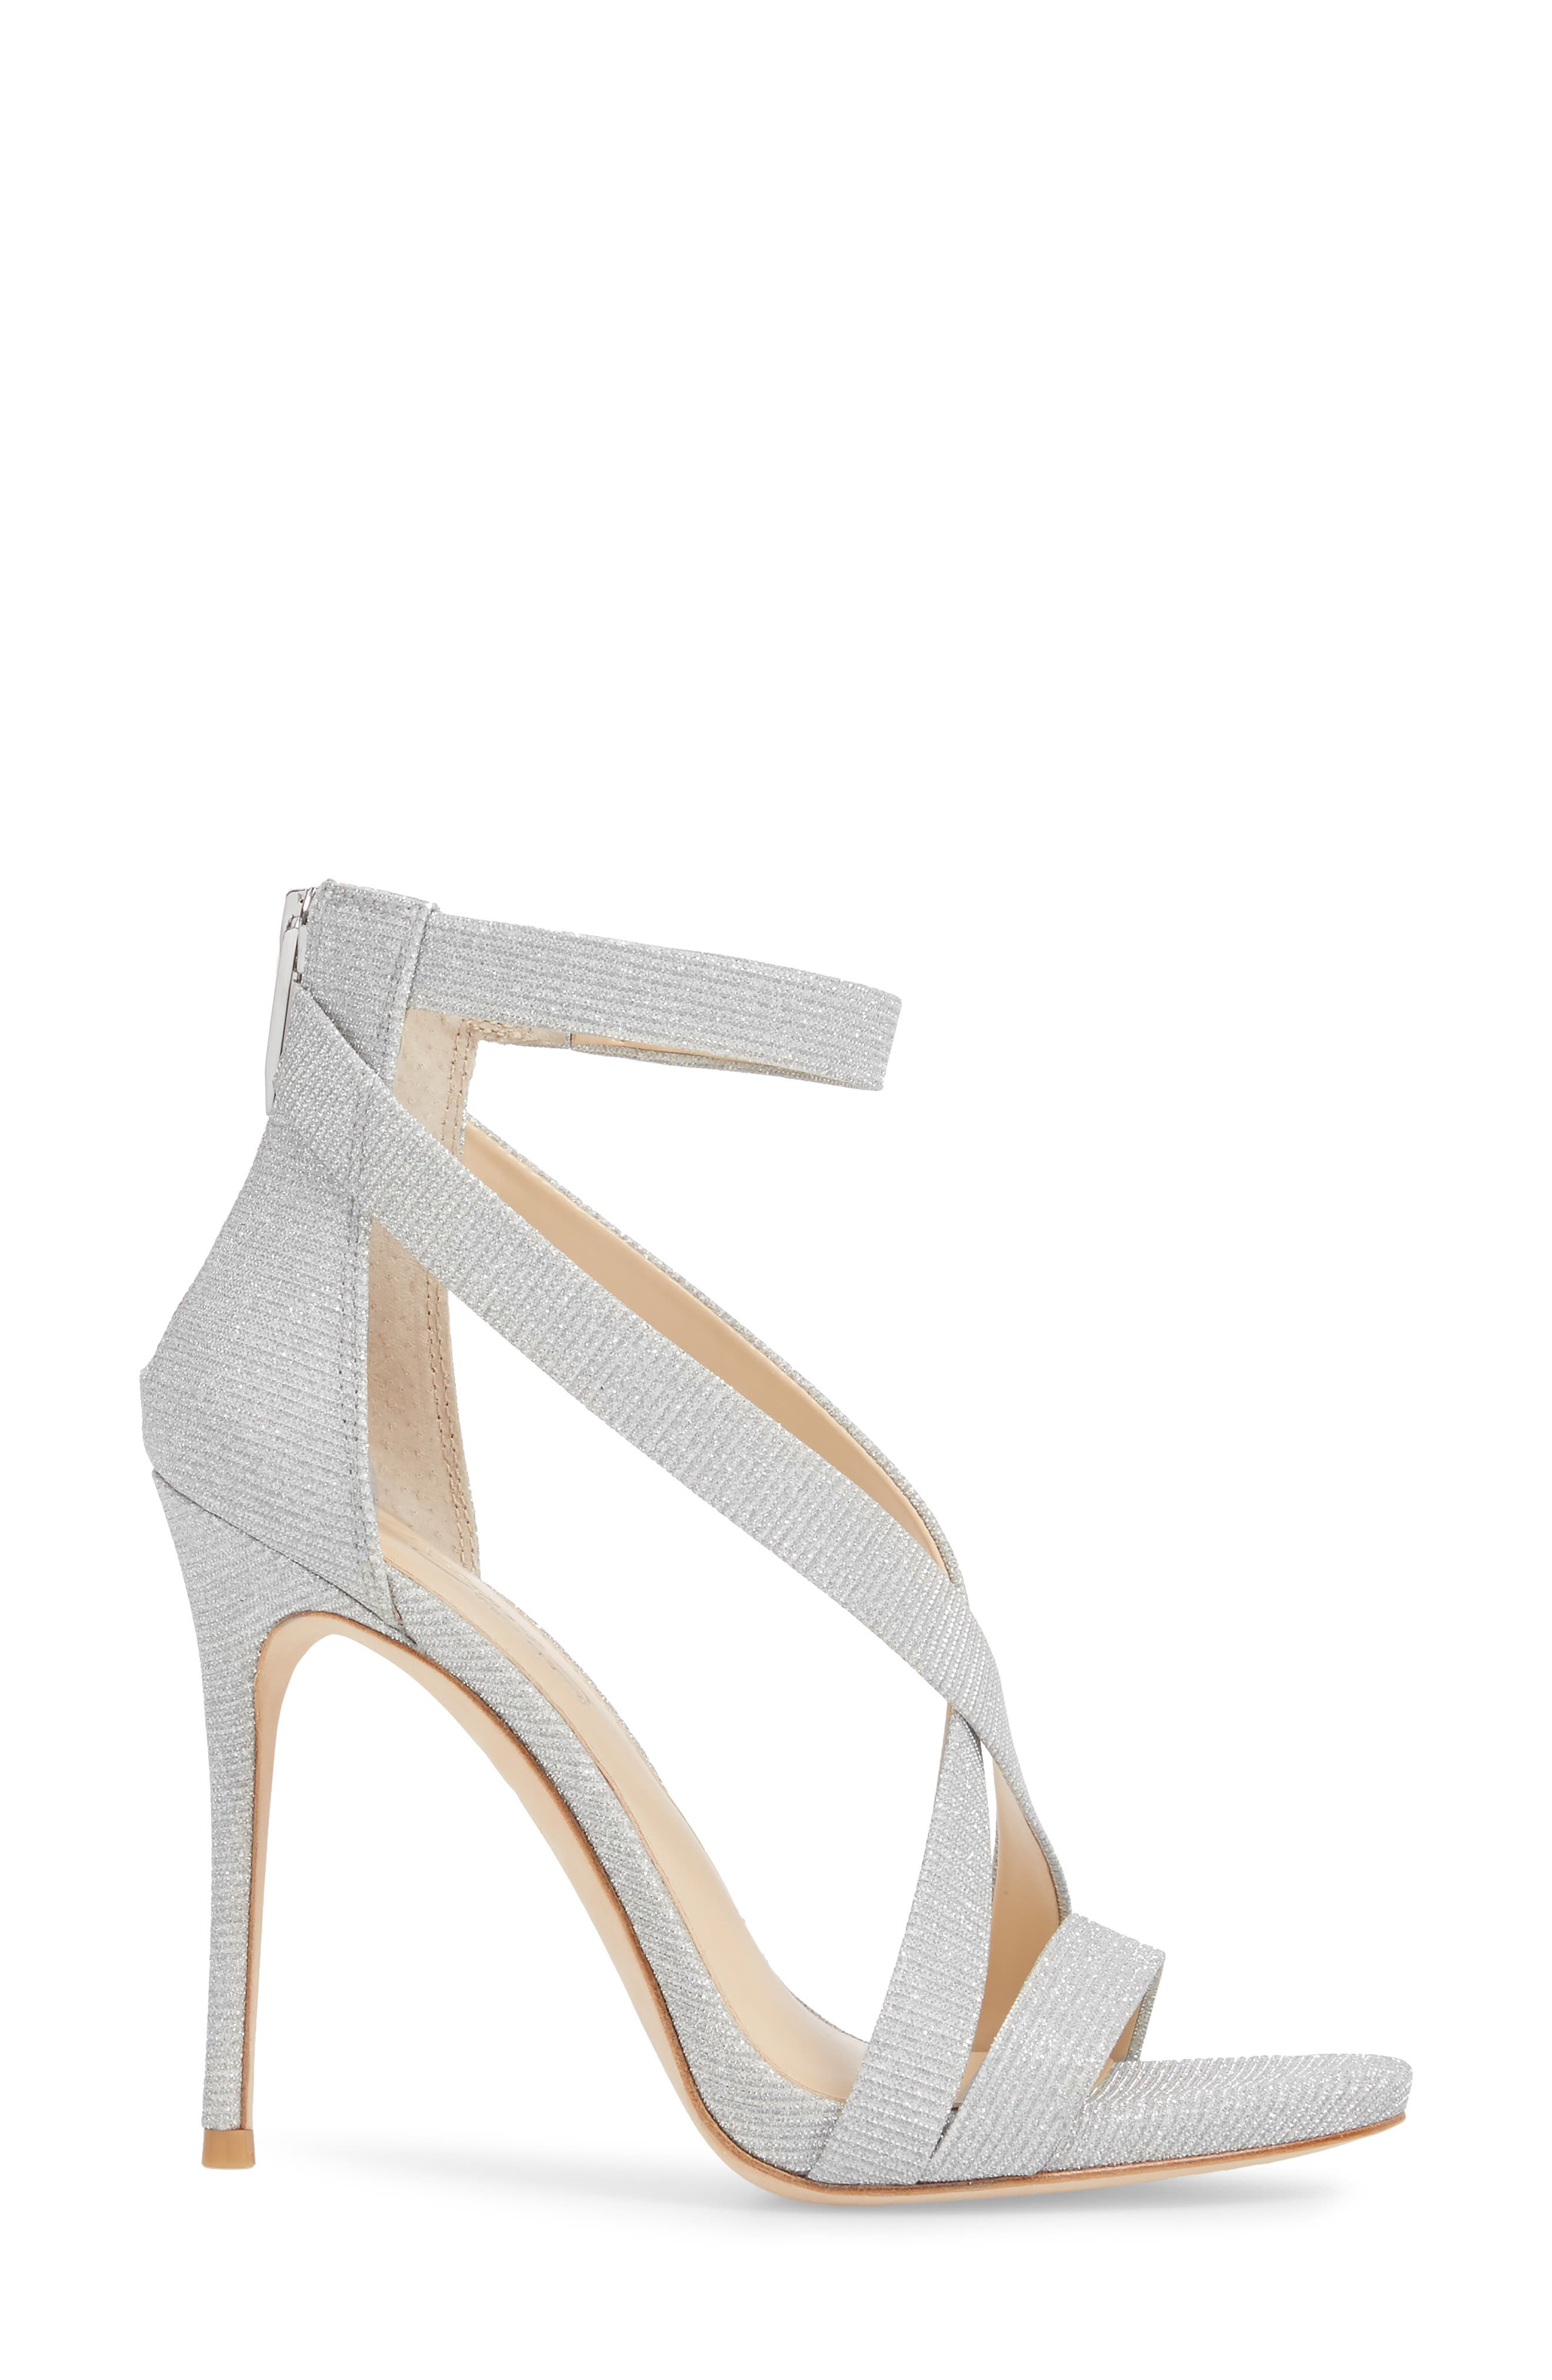 Imagine Vince Camuto 'Devin' Sandal,                             Alternate thumbnail 3, color,                             PLATINUM FABRIC